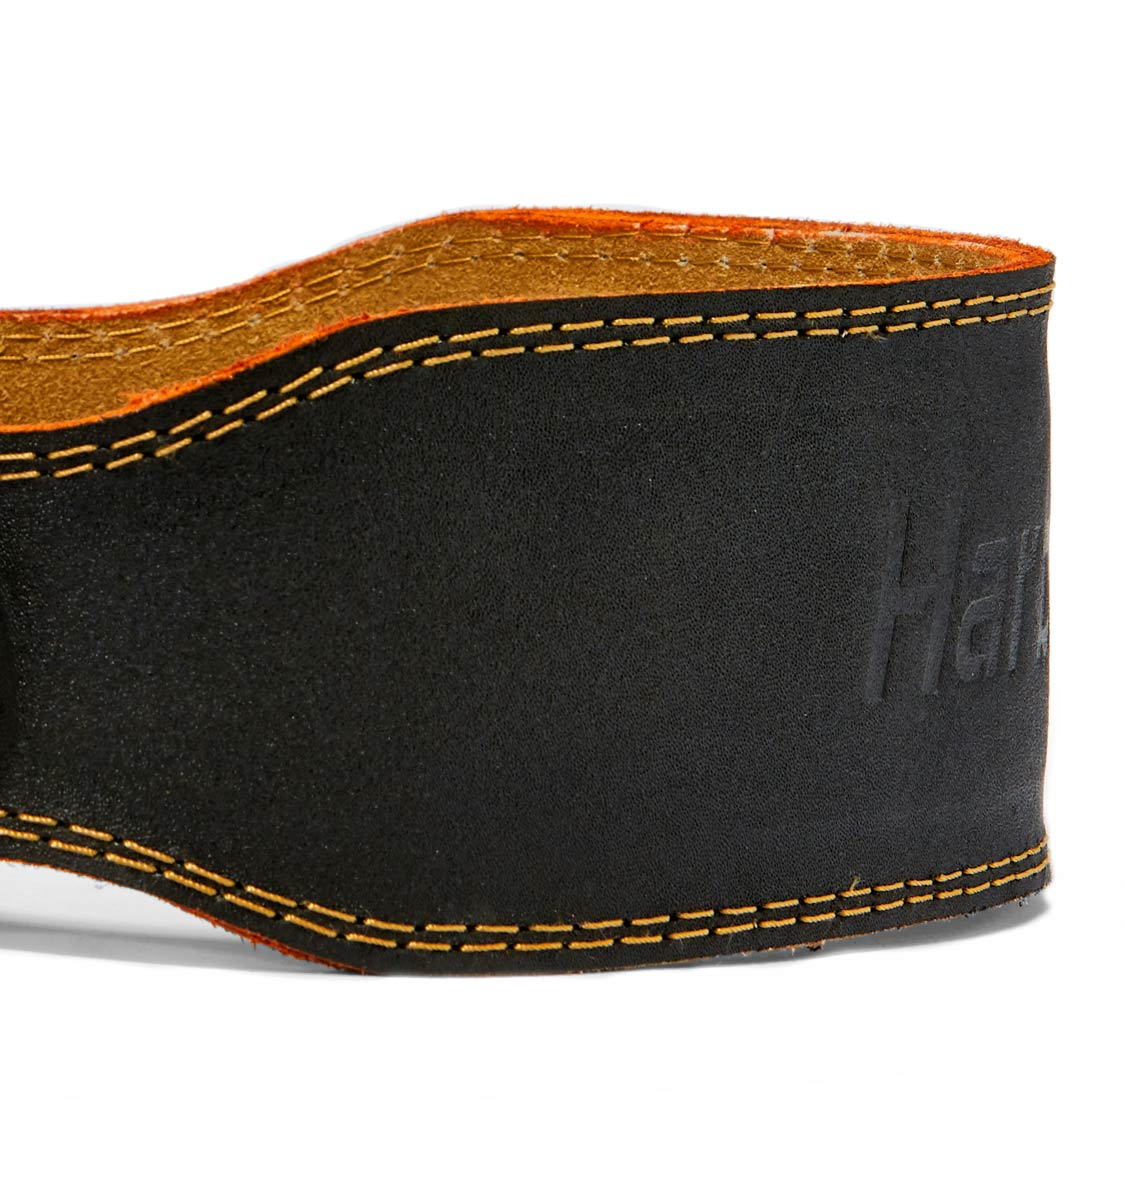 HAR284 Harbinger 4 inch Leather Weight Lifting Belt Side Close Up